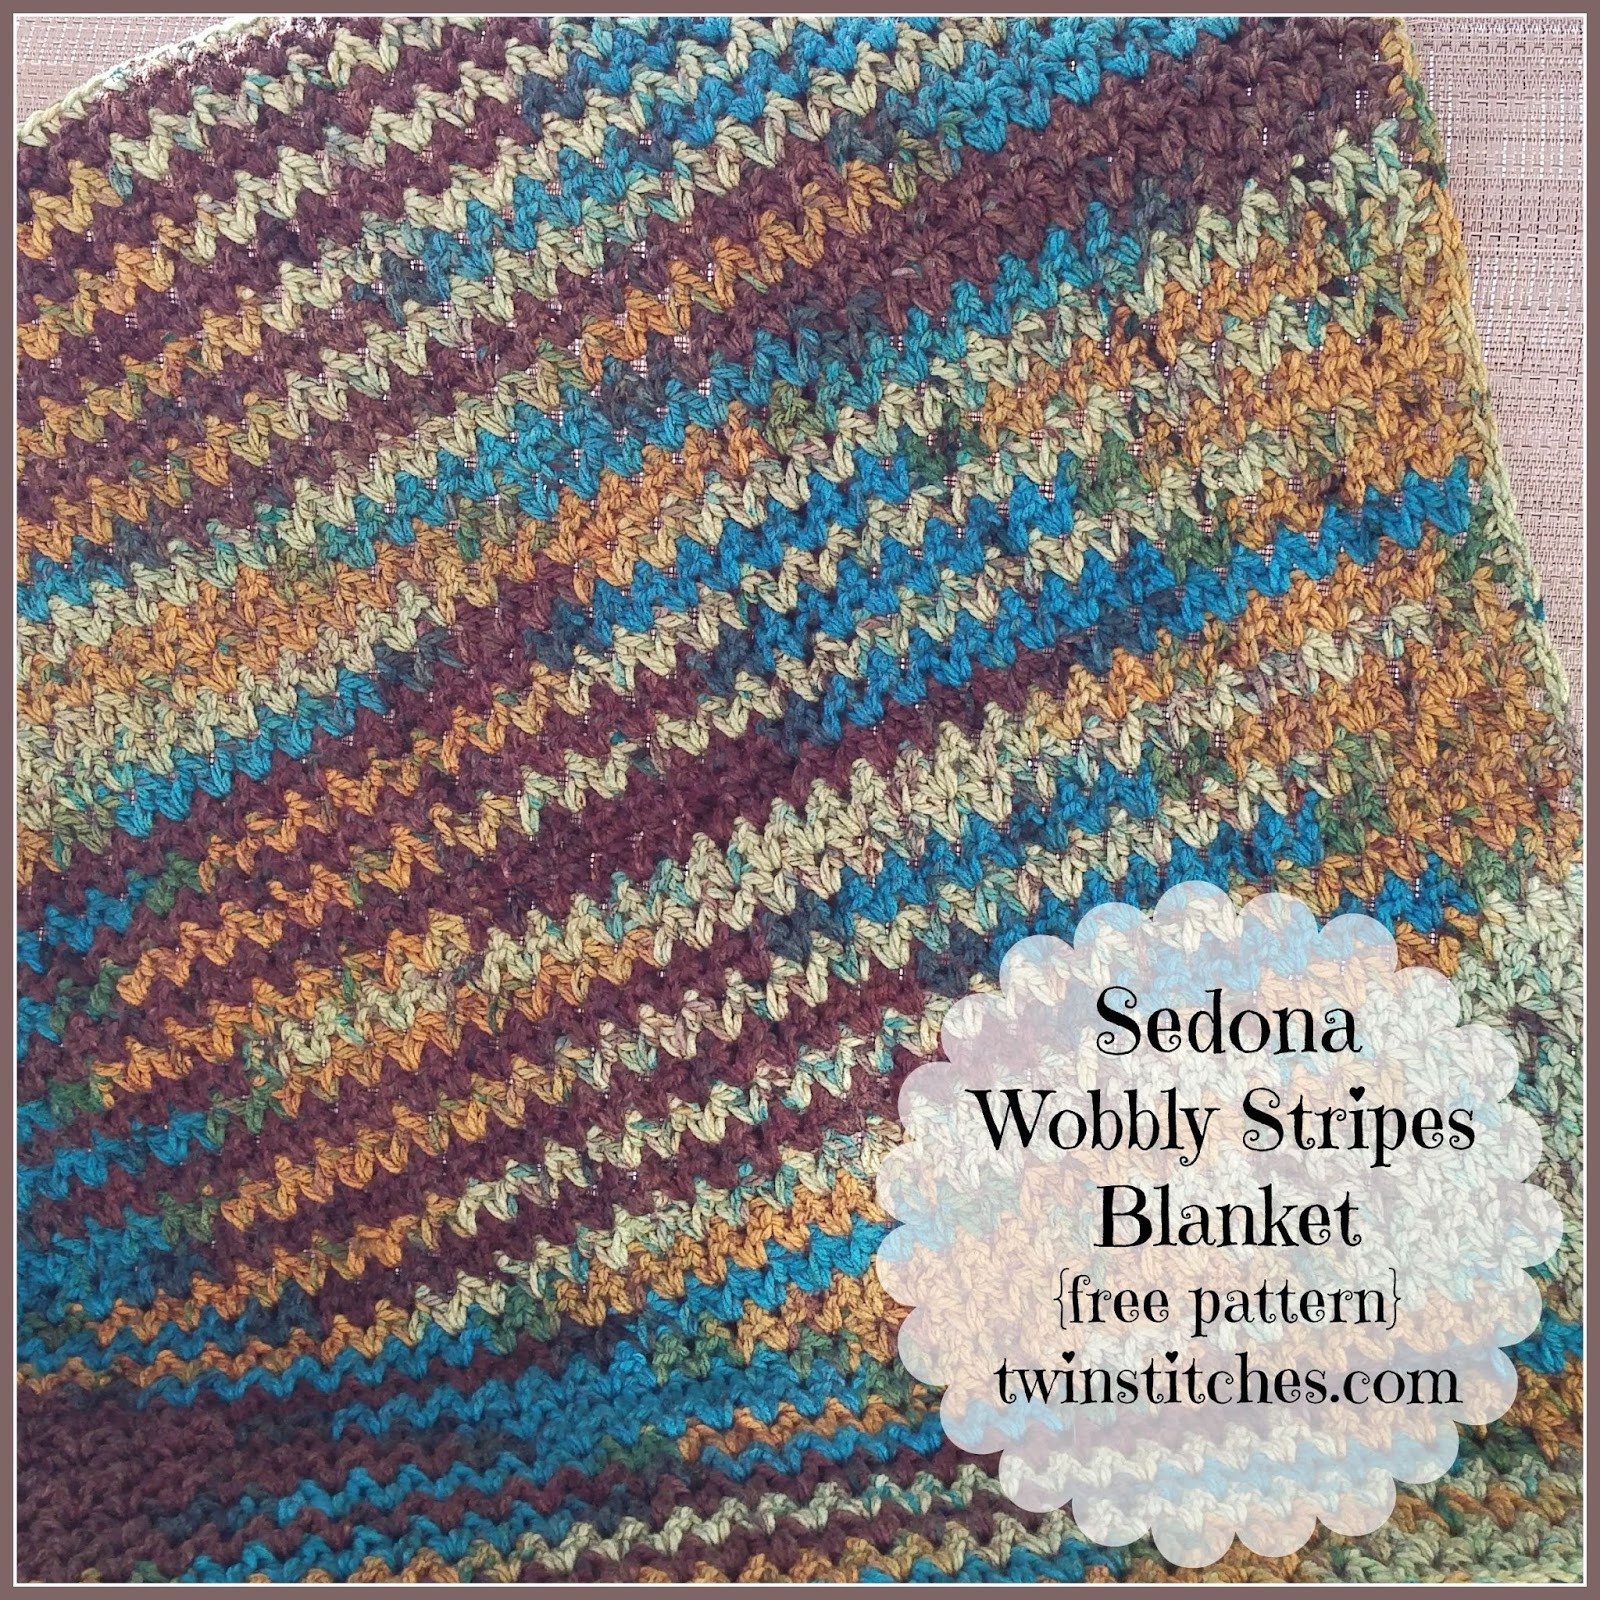 Inspirational Tw In Stitches Sedona Wobbly Stripes Blanket Free Best Yarn for Crochet Blanket Of Amazing 40 Images Best Yarn for Crochet Blanket